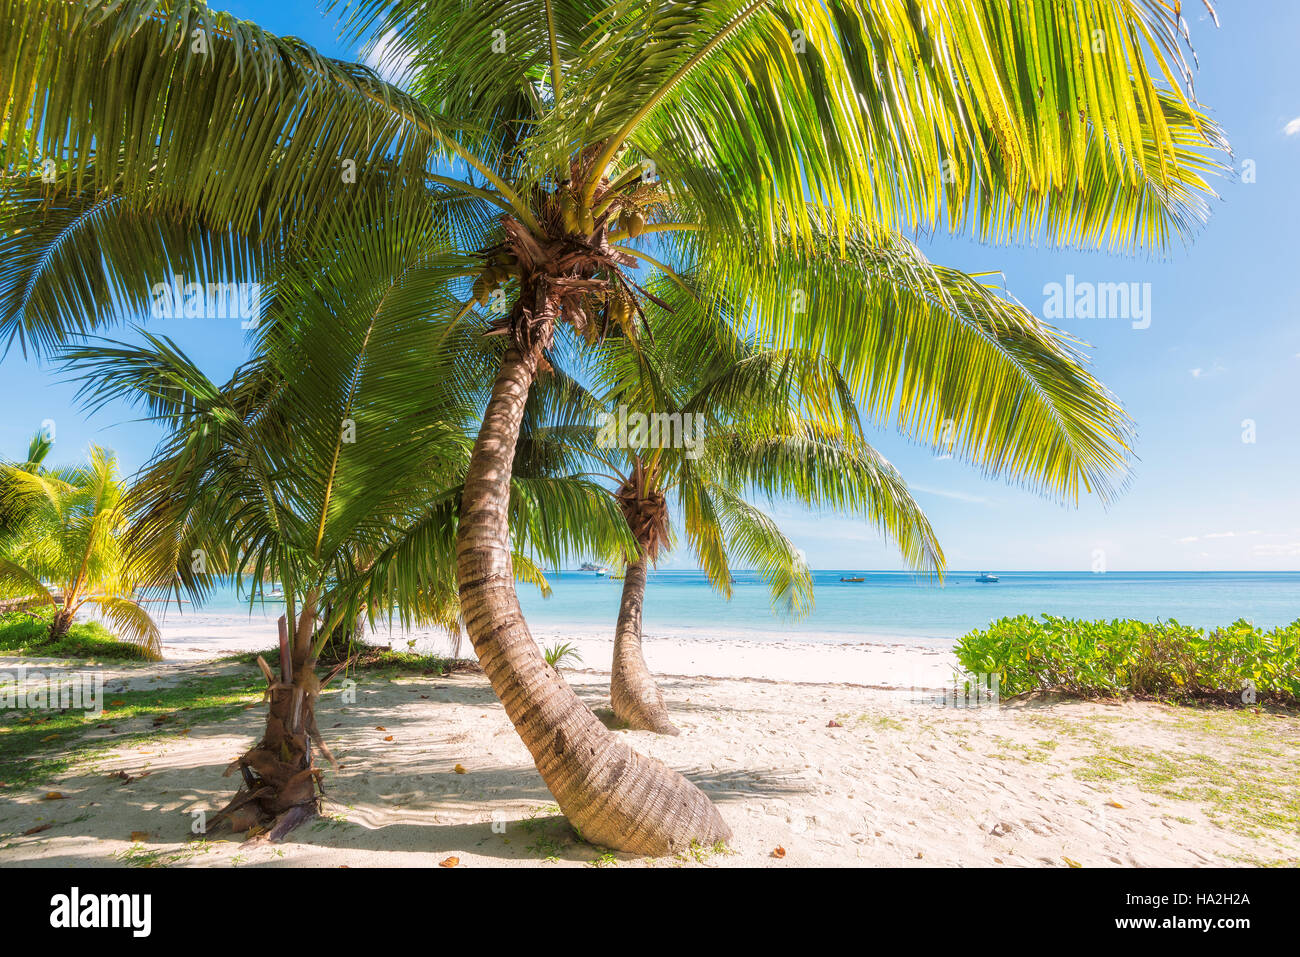 Palm trees on a tropical beach. - Stock Image